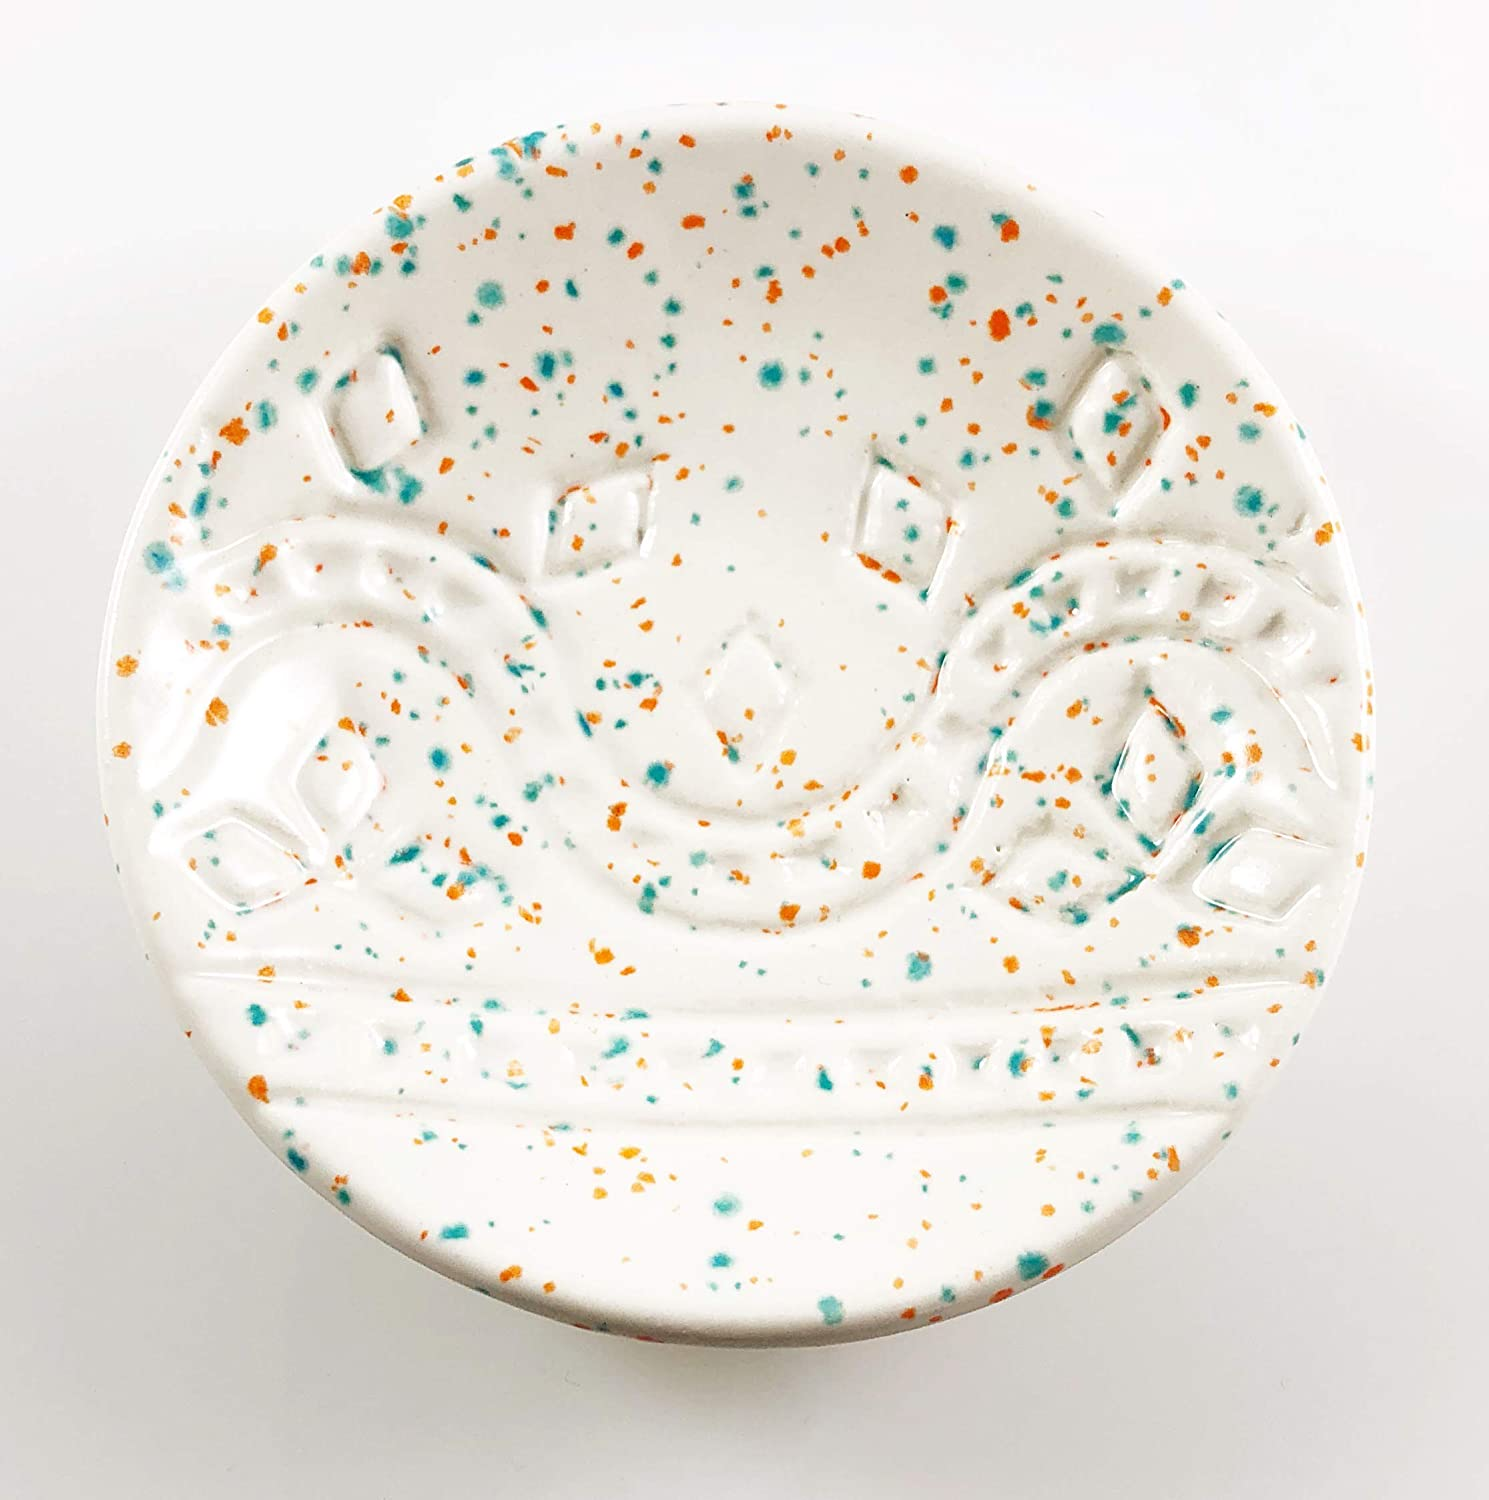 Speckled White Ring Dish - Handmade Jewelry Bowl with confetti glaze